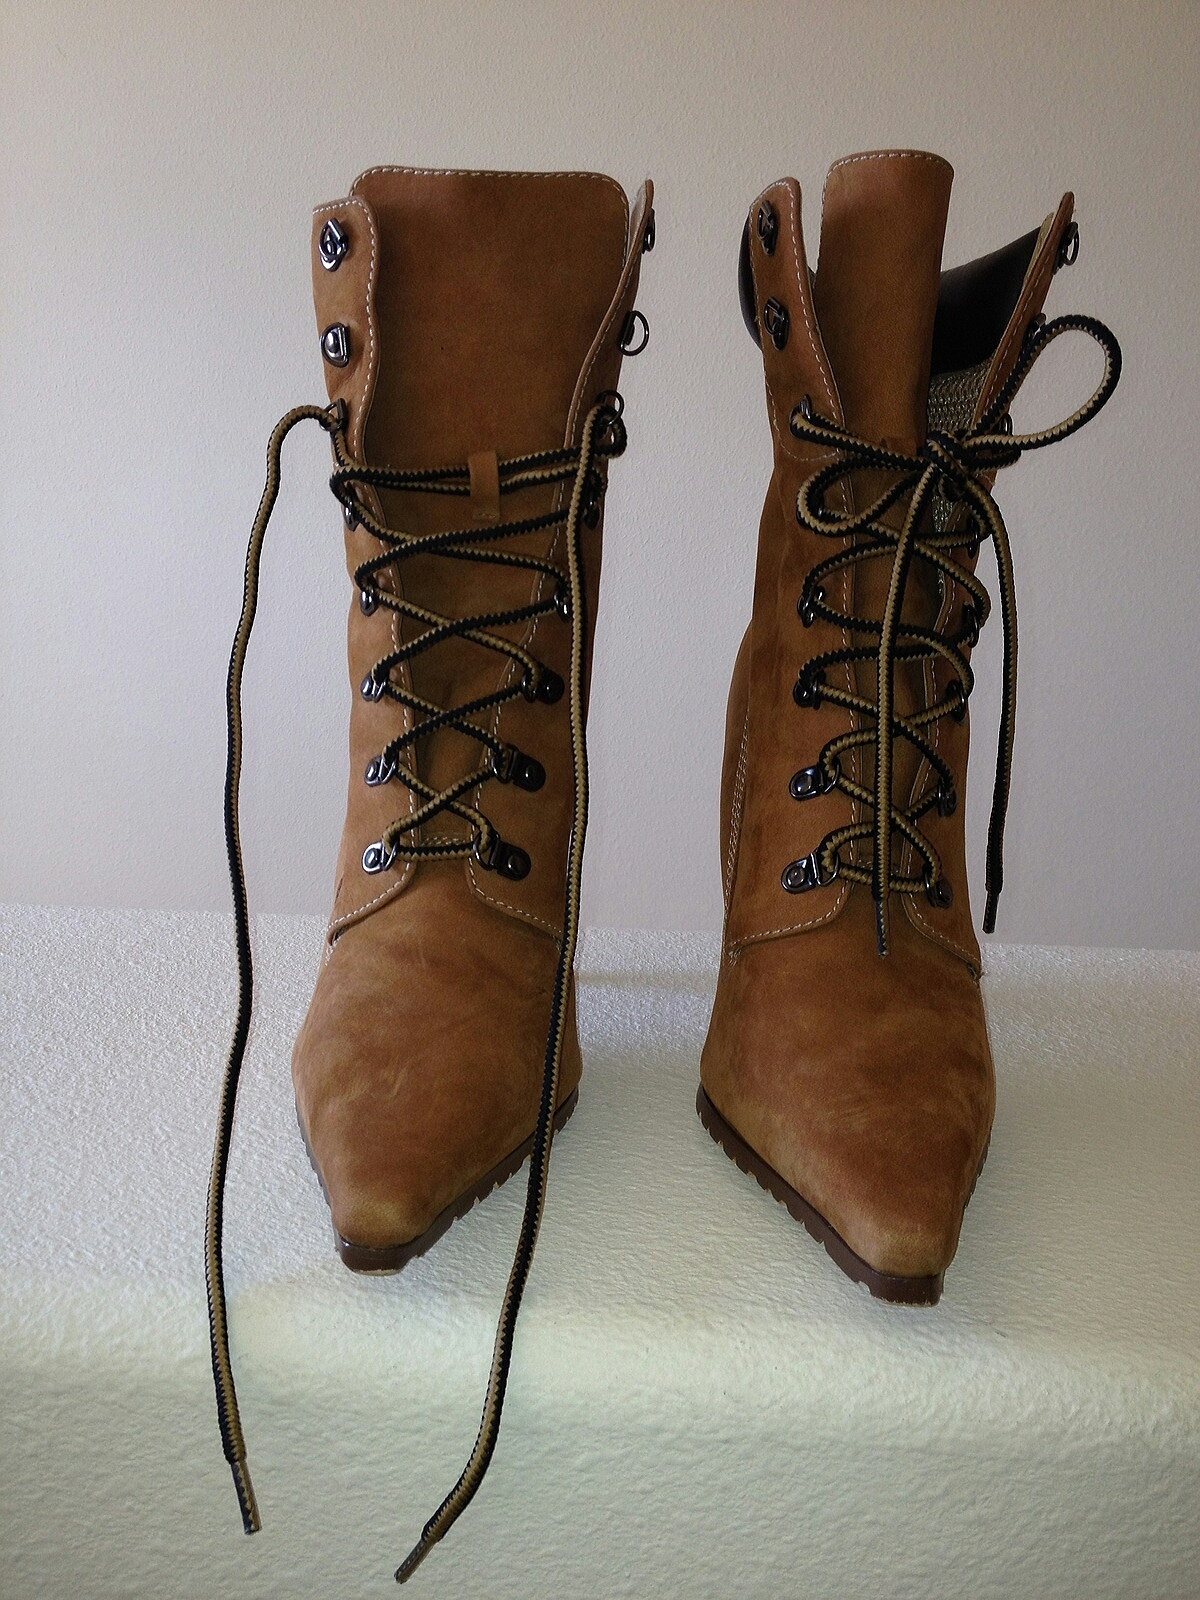 Womens Tan Wheat Suede Workboot Wood Stiletto Booties Boots 9